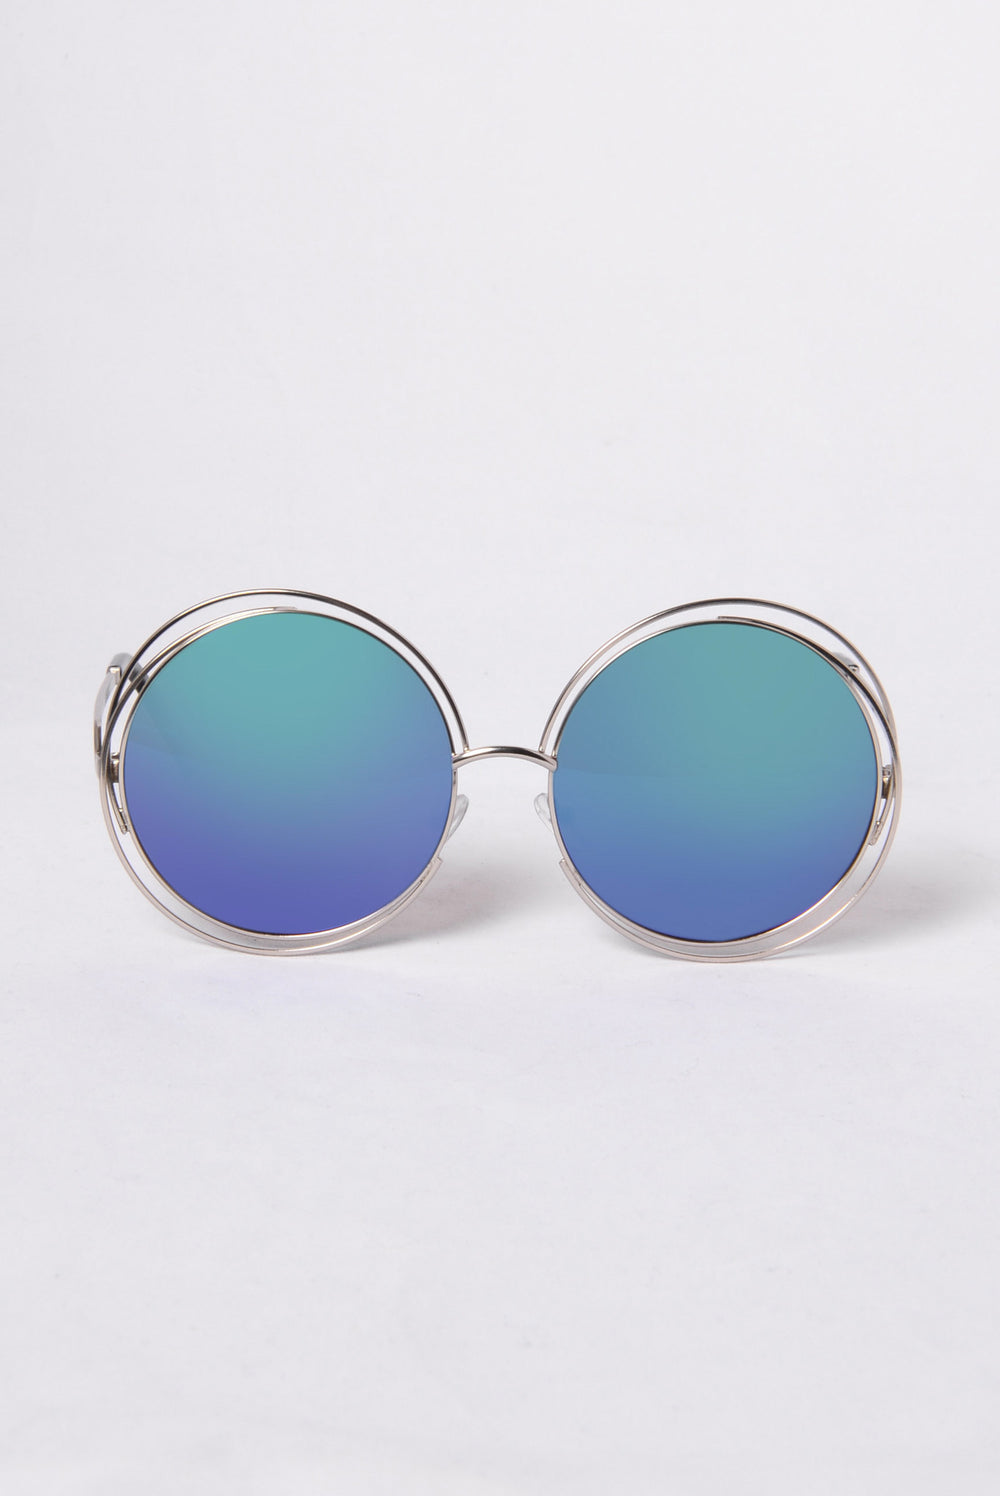 Lover's Beach Sunglasses - Silver/Blue